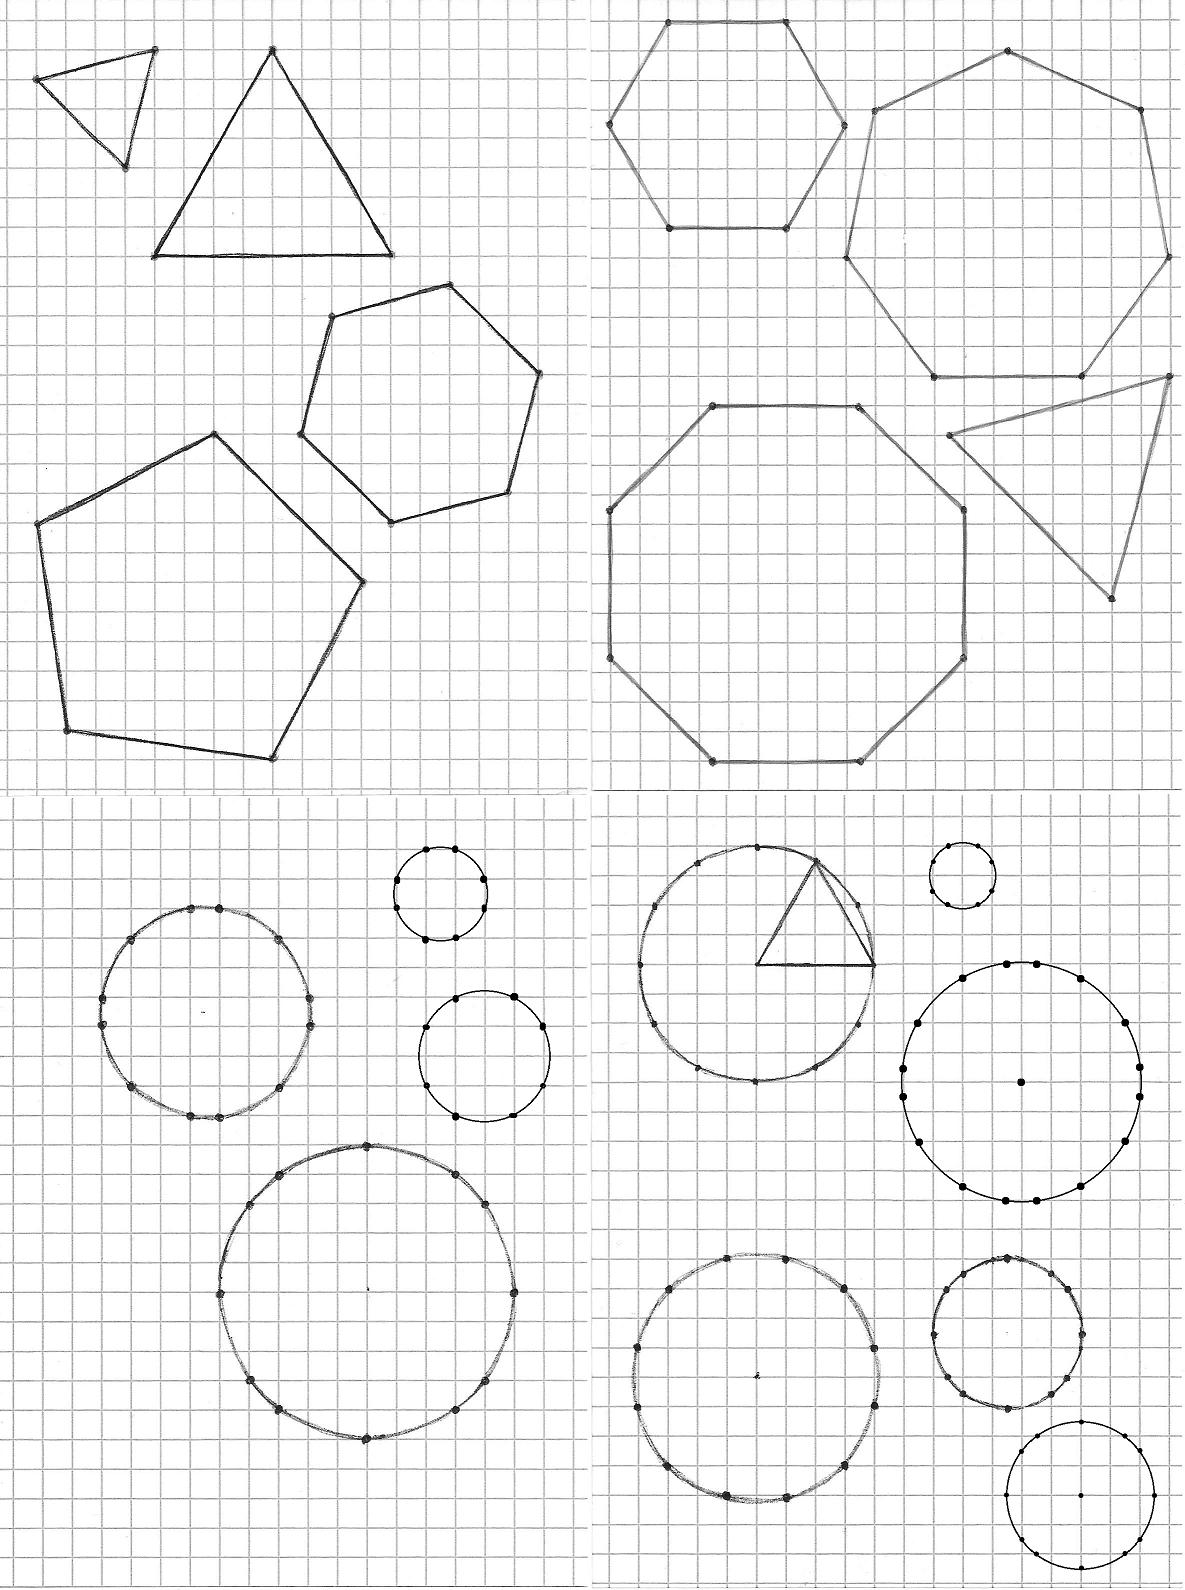 graph paper drawing at getdrawings com